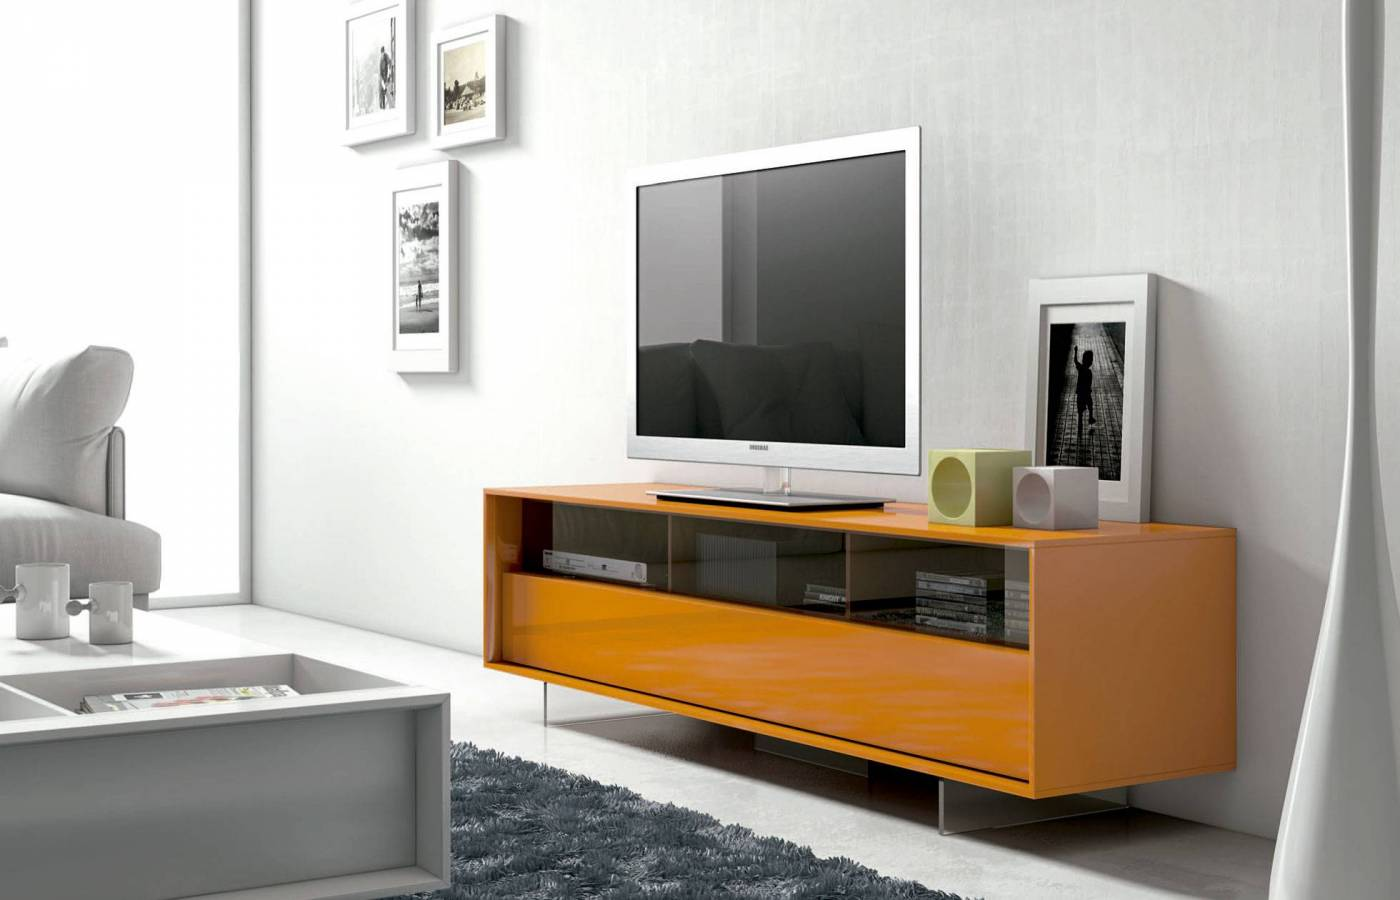 Mueble TV Next AU01 de A.Brito